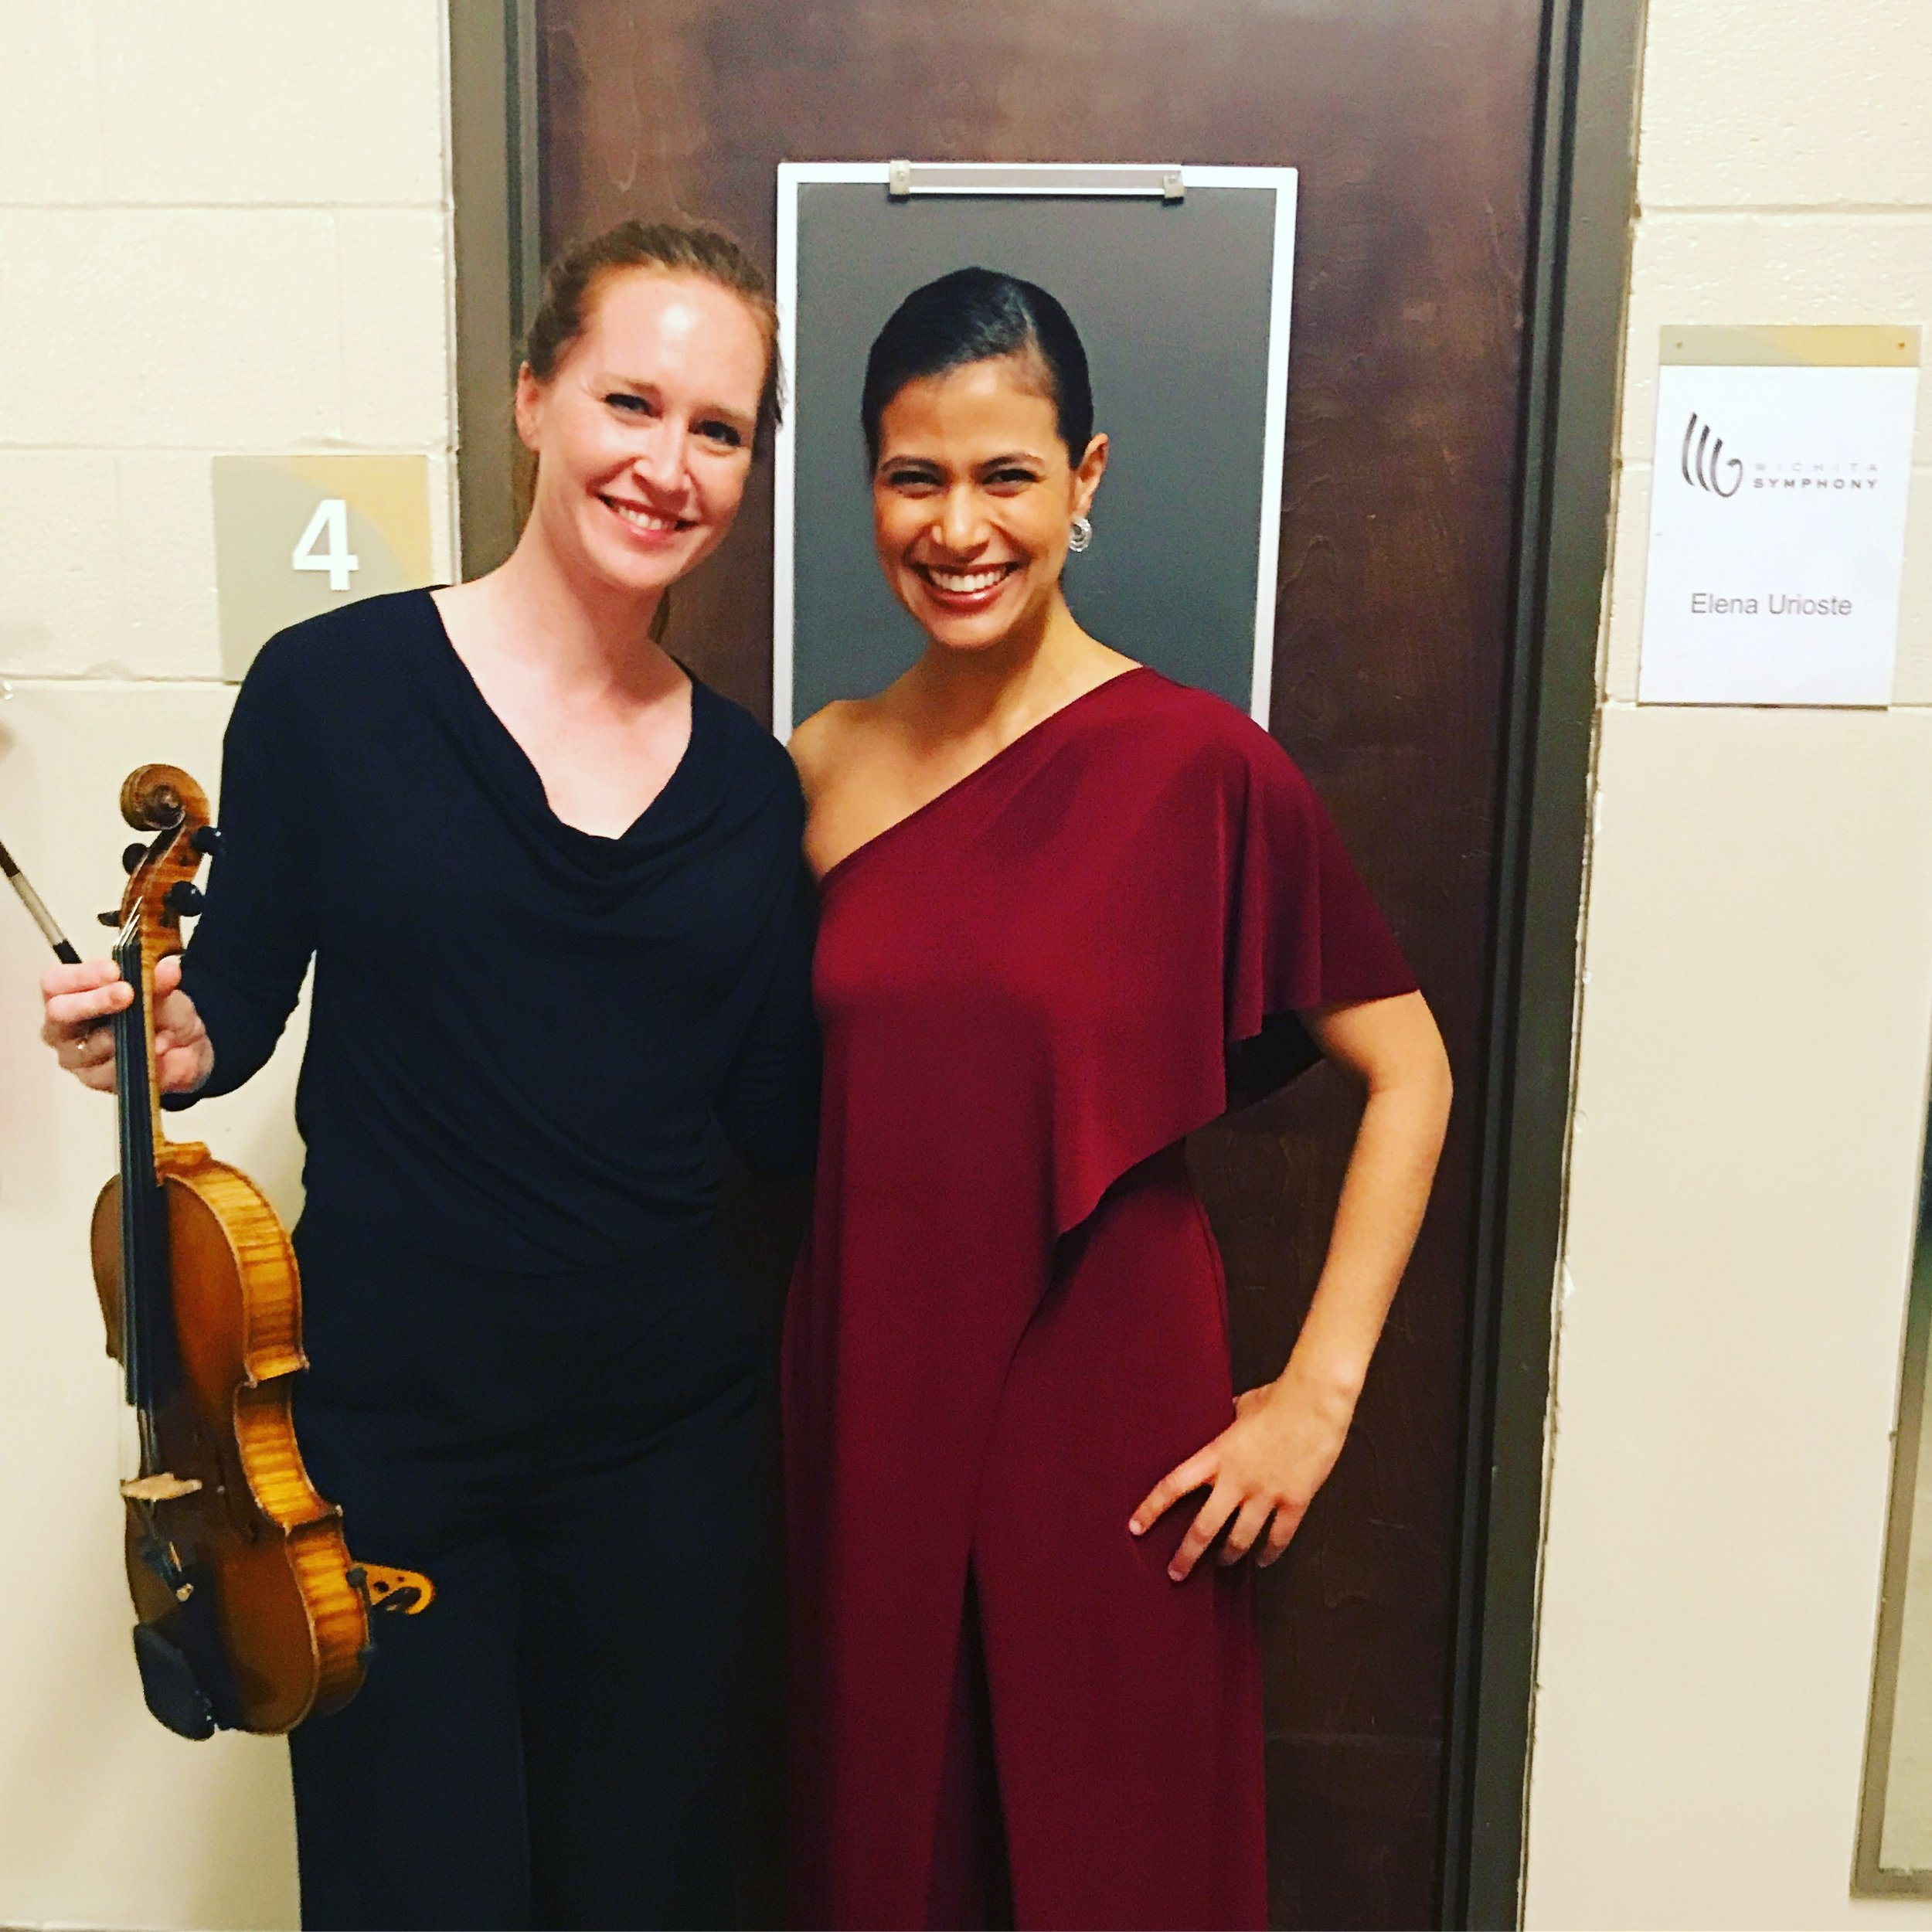 With Elena after the concert. What a blast (and I LOVE her jumpsuit)!